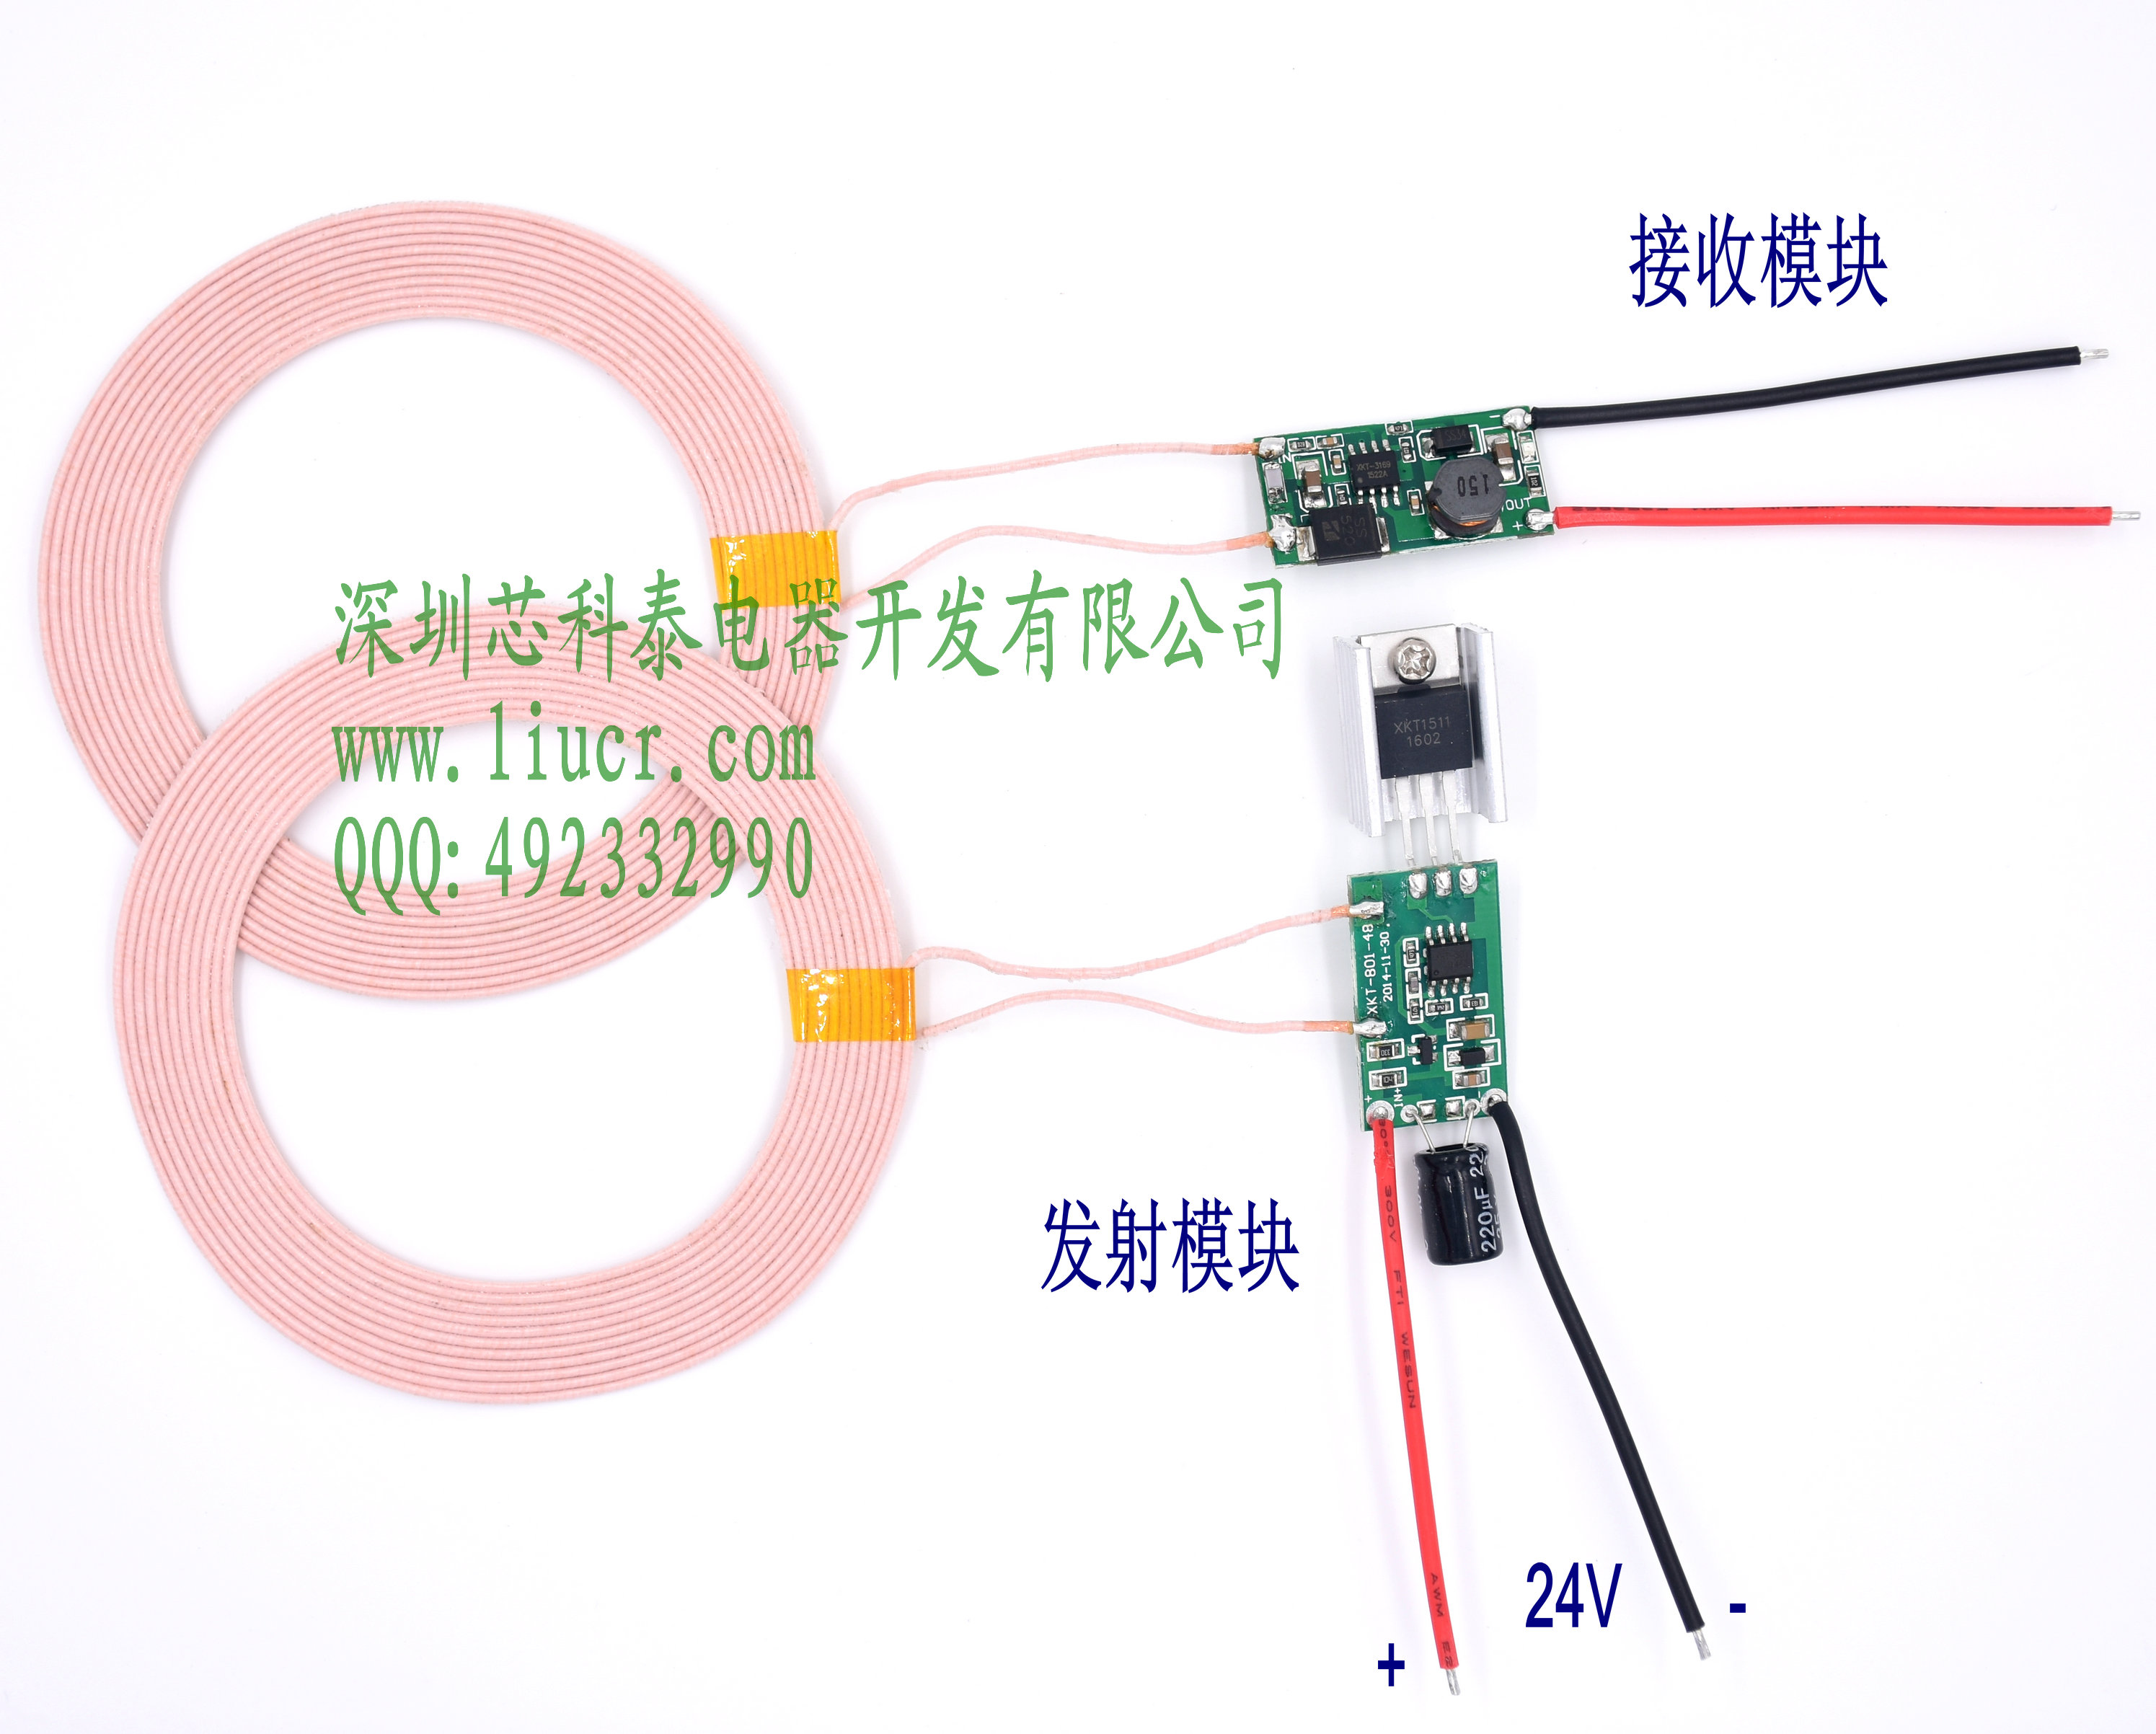 20mm remote receiving output 5V2A high power wireless power supply module wireless charging module module<br>